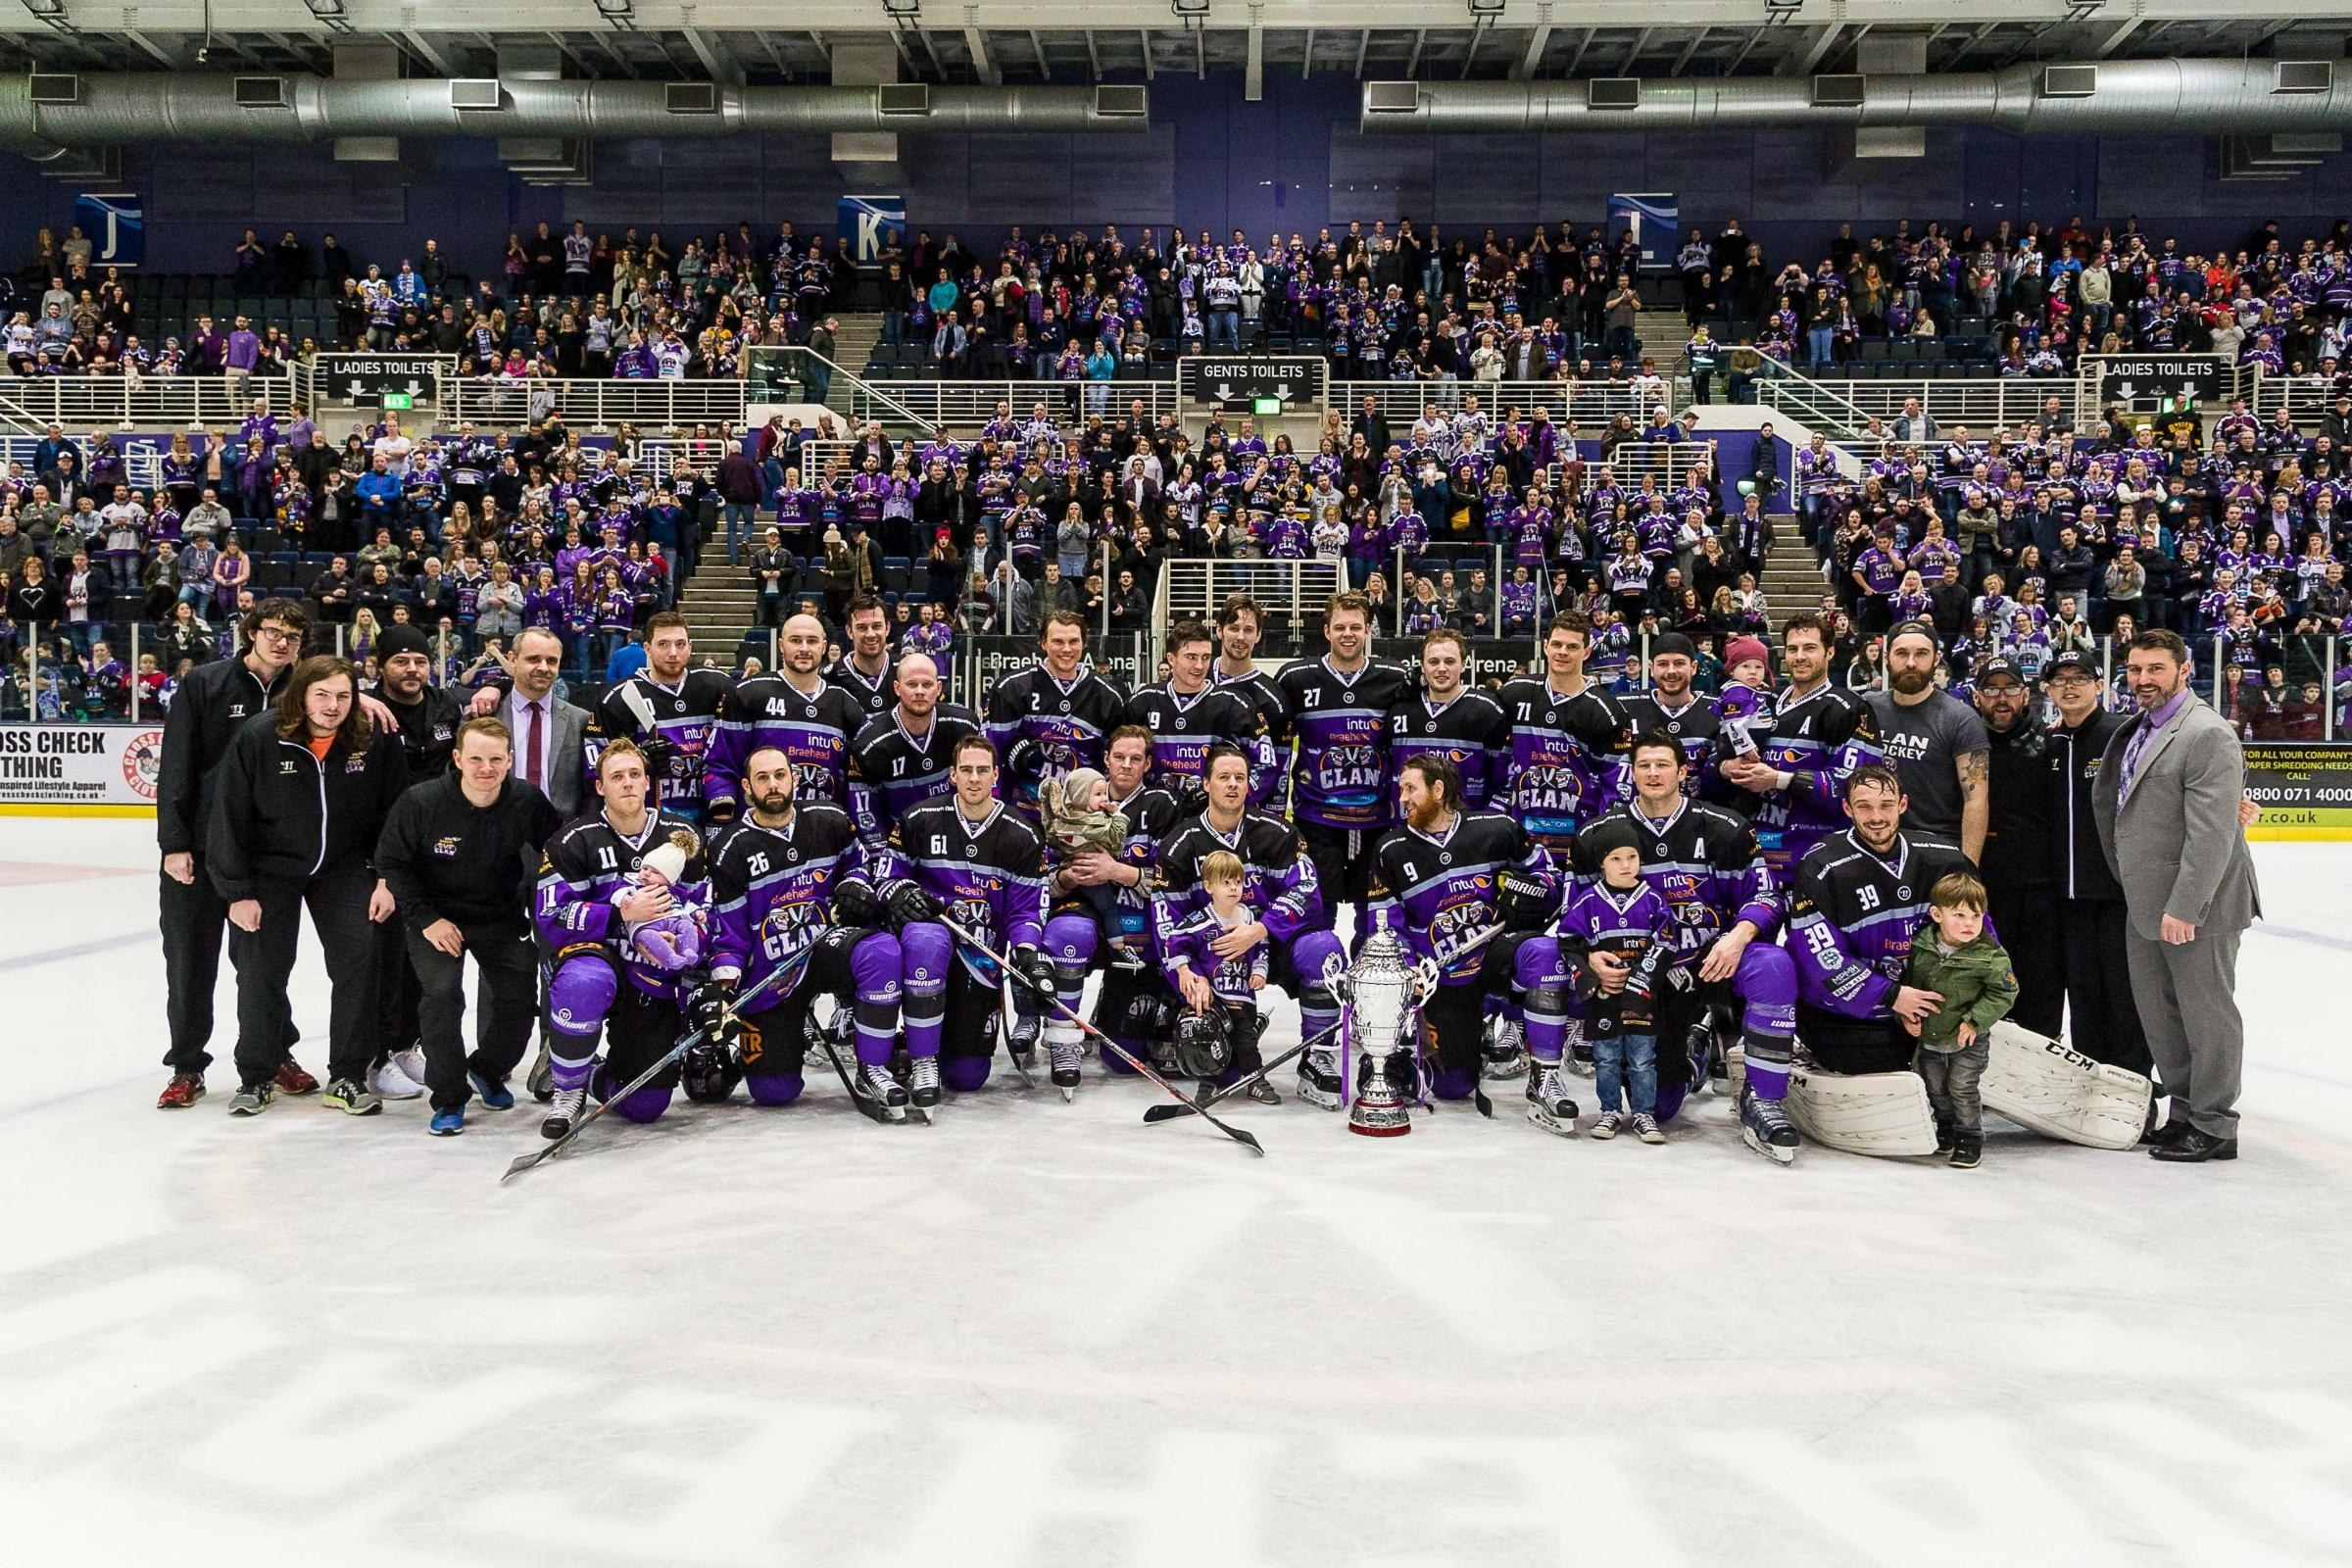 Braehead Clan defeat Dundee Stars 4-1 at Braehead Arena and clinch the 2016-17 Gardiner Conference  title on ,25 February 2017, Picture: Al Goold (www.algooldphoto.com).